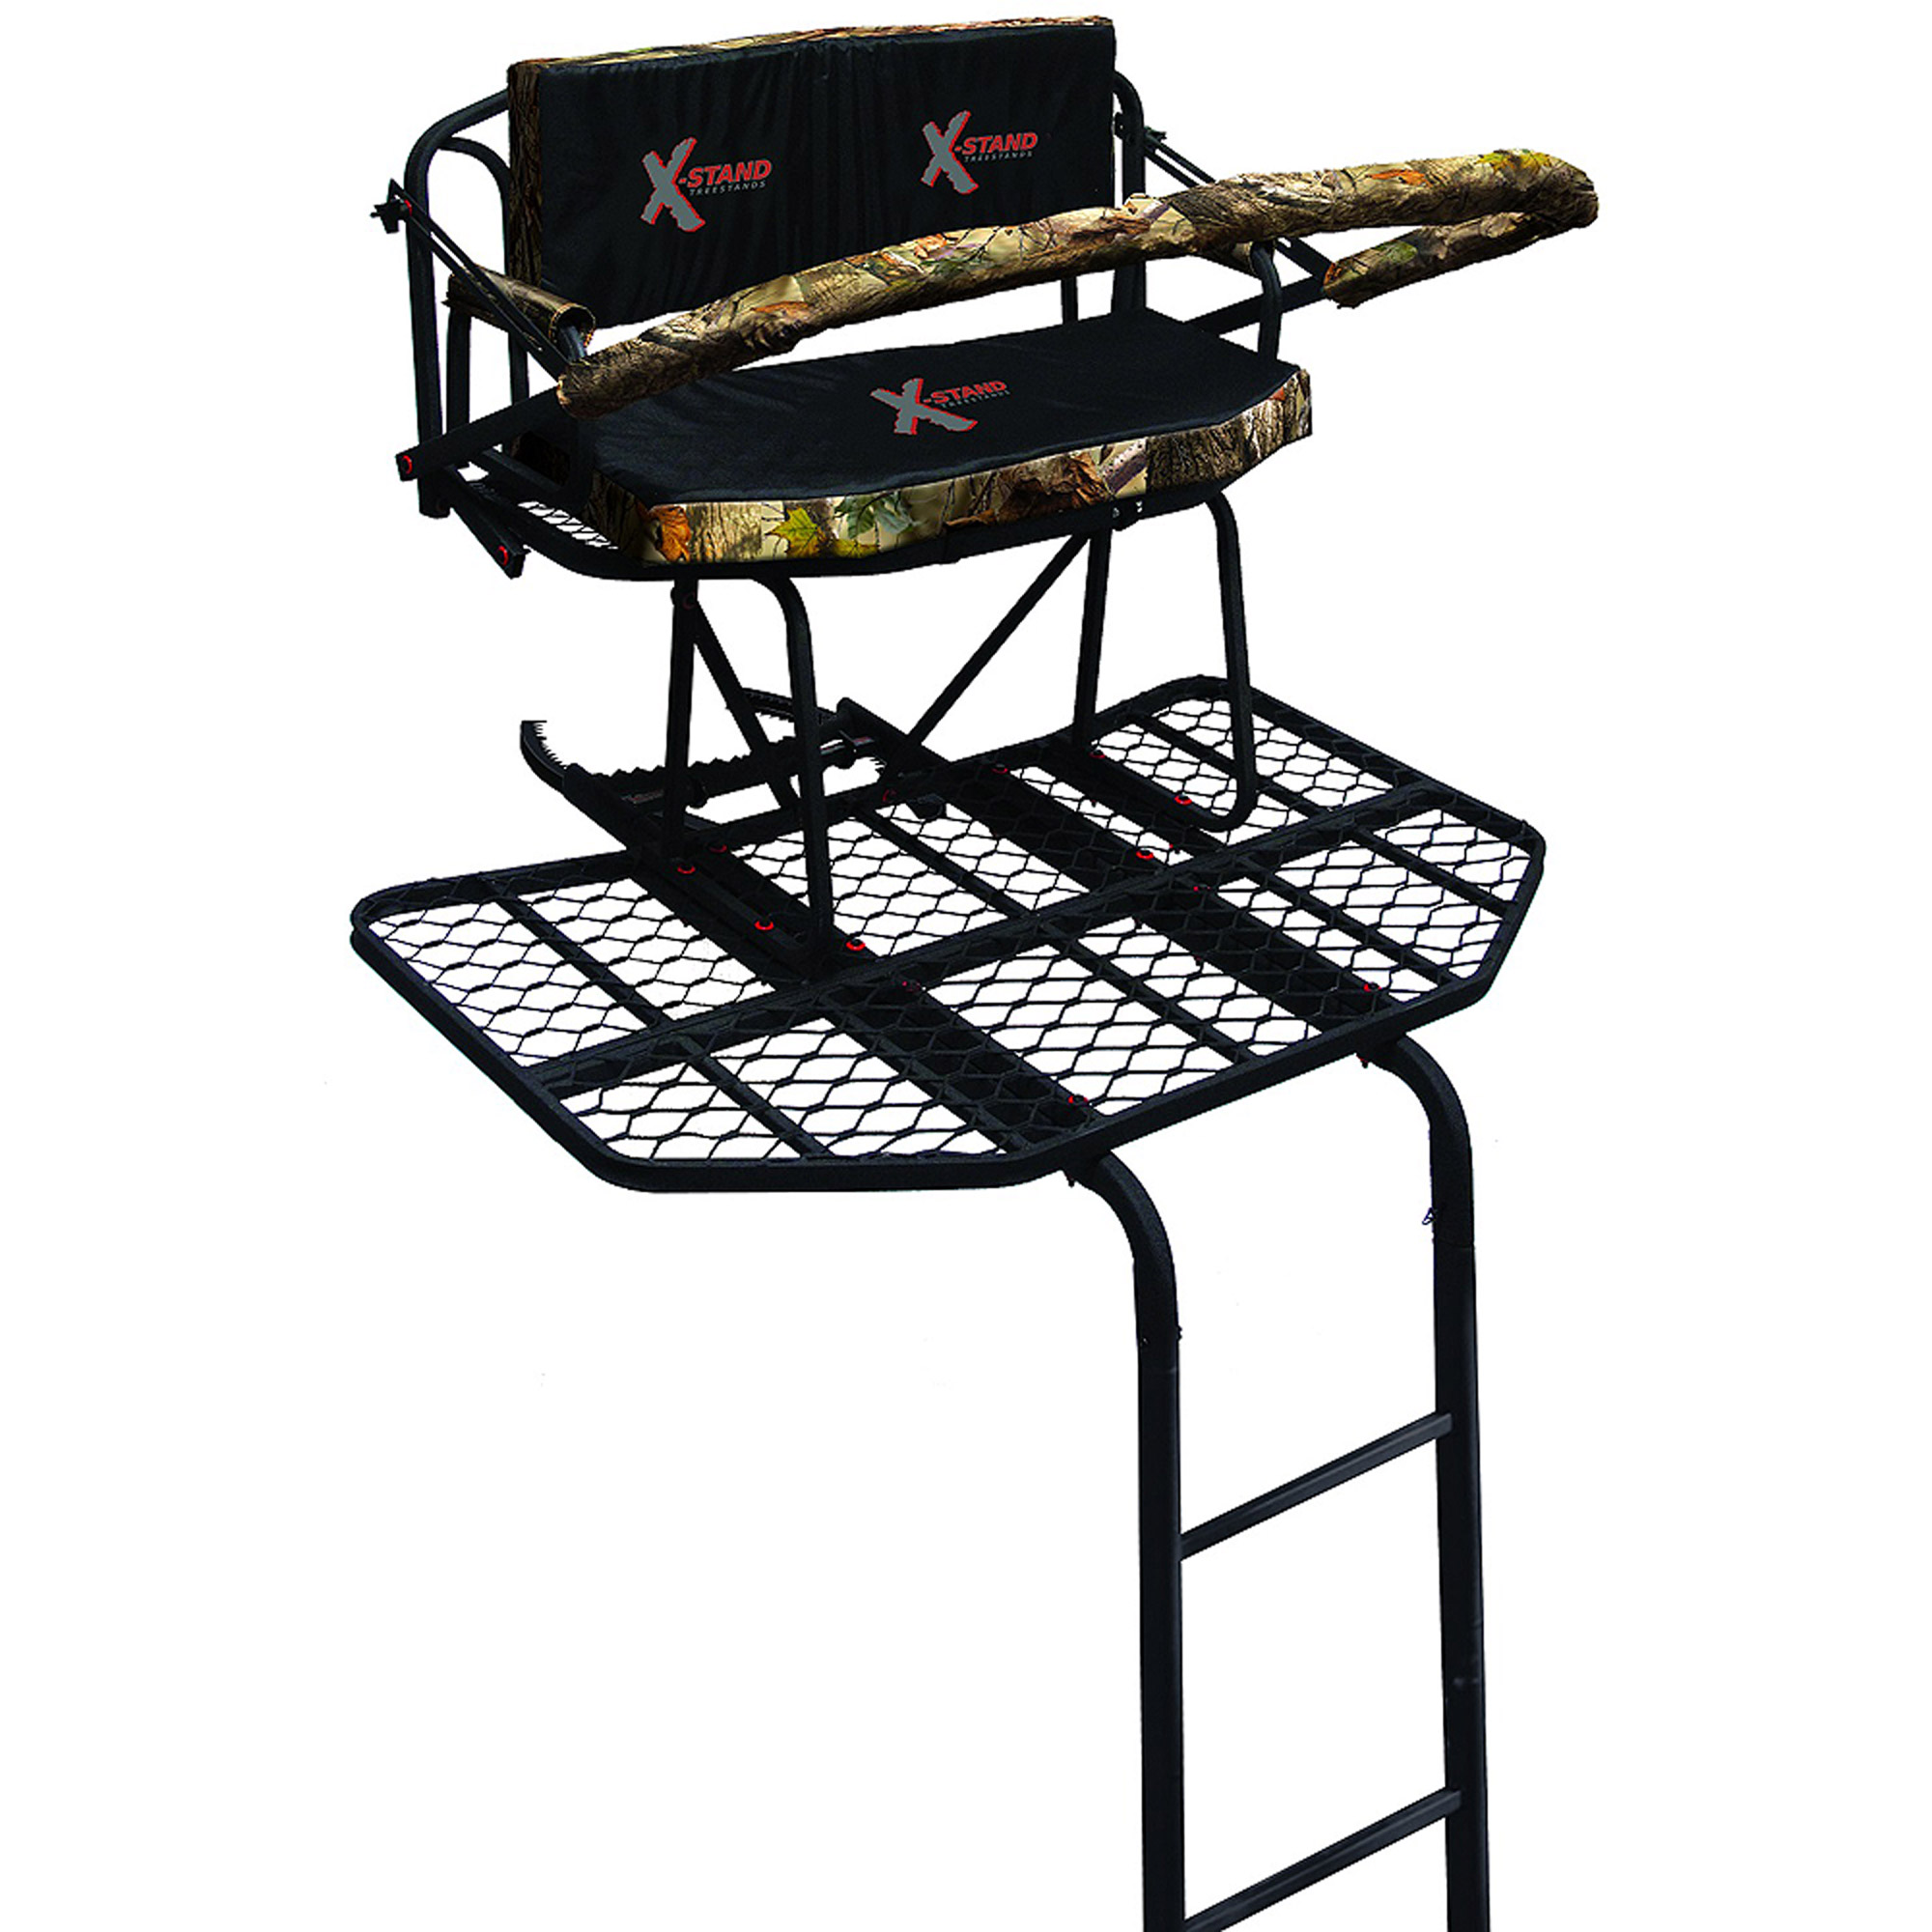 X-Stand Big Bubba Ladderstand